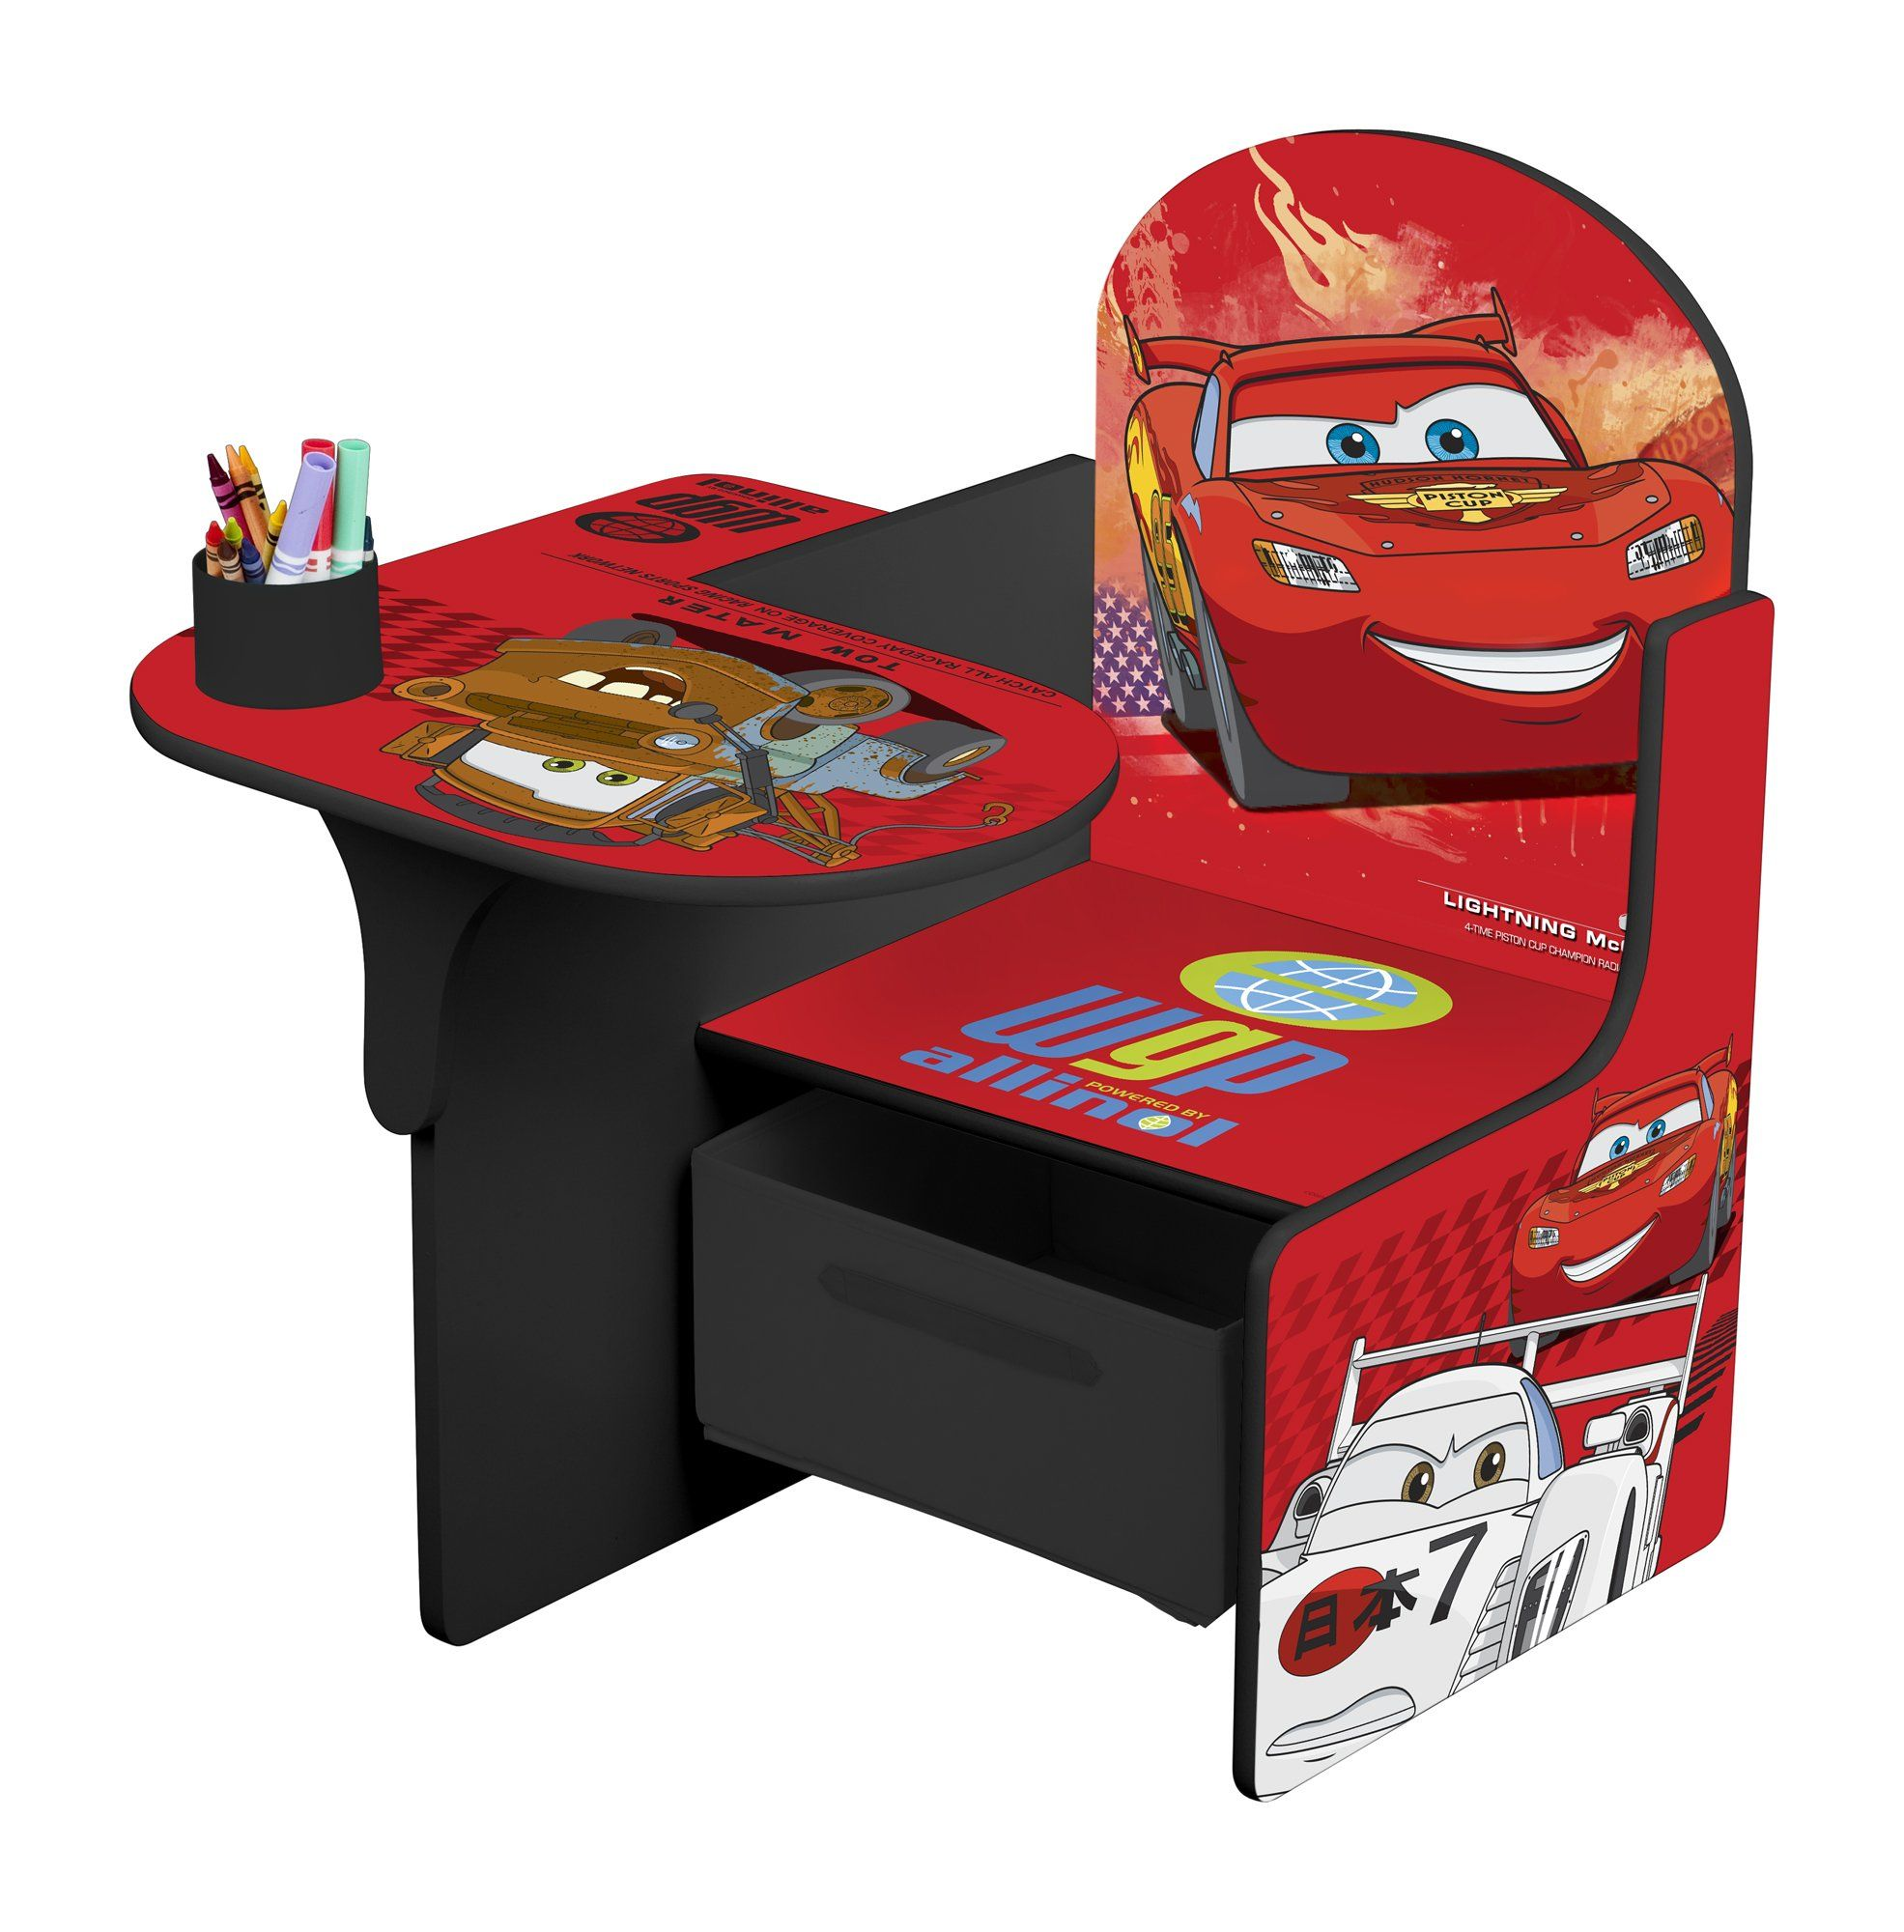 Incredible Disney Cars Chair Desk With Storage Bin Amazon Co Uk Pdpeps Interior Chair Design Pdpepsorg